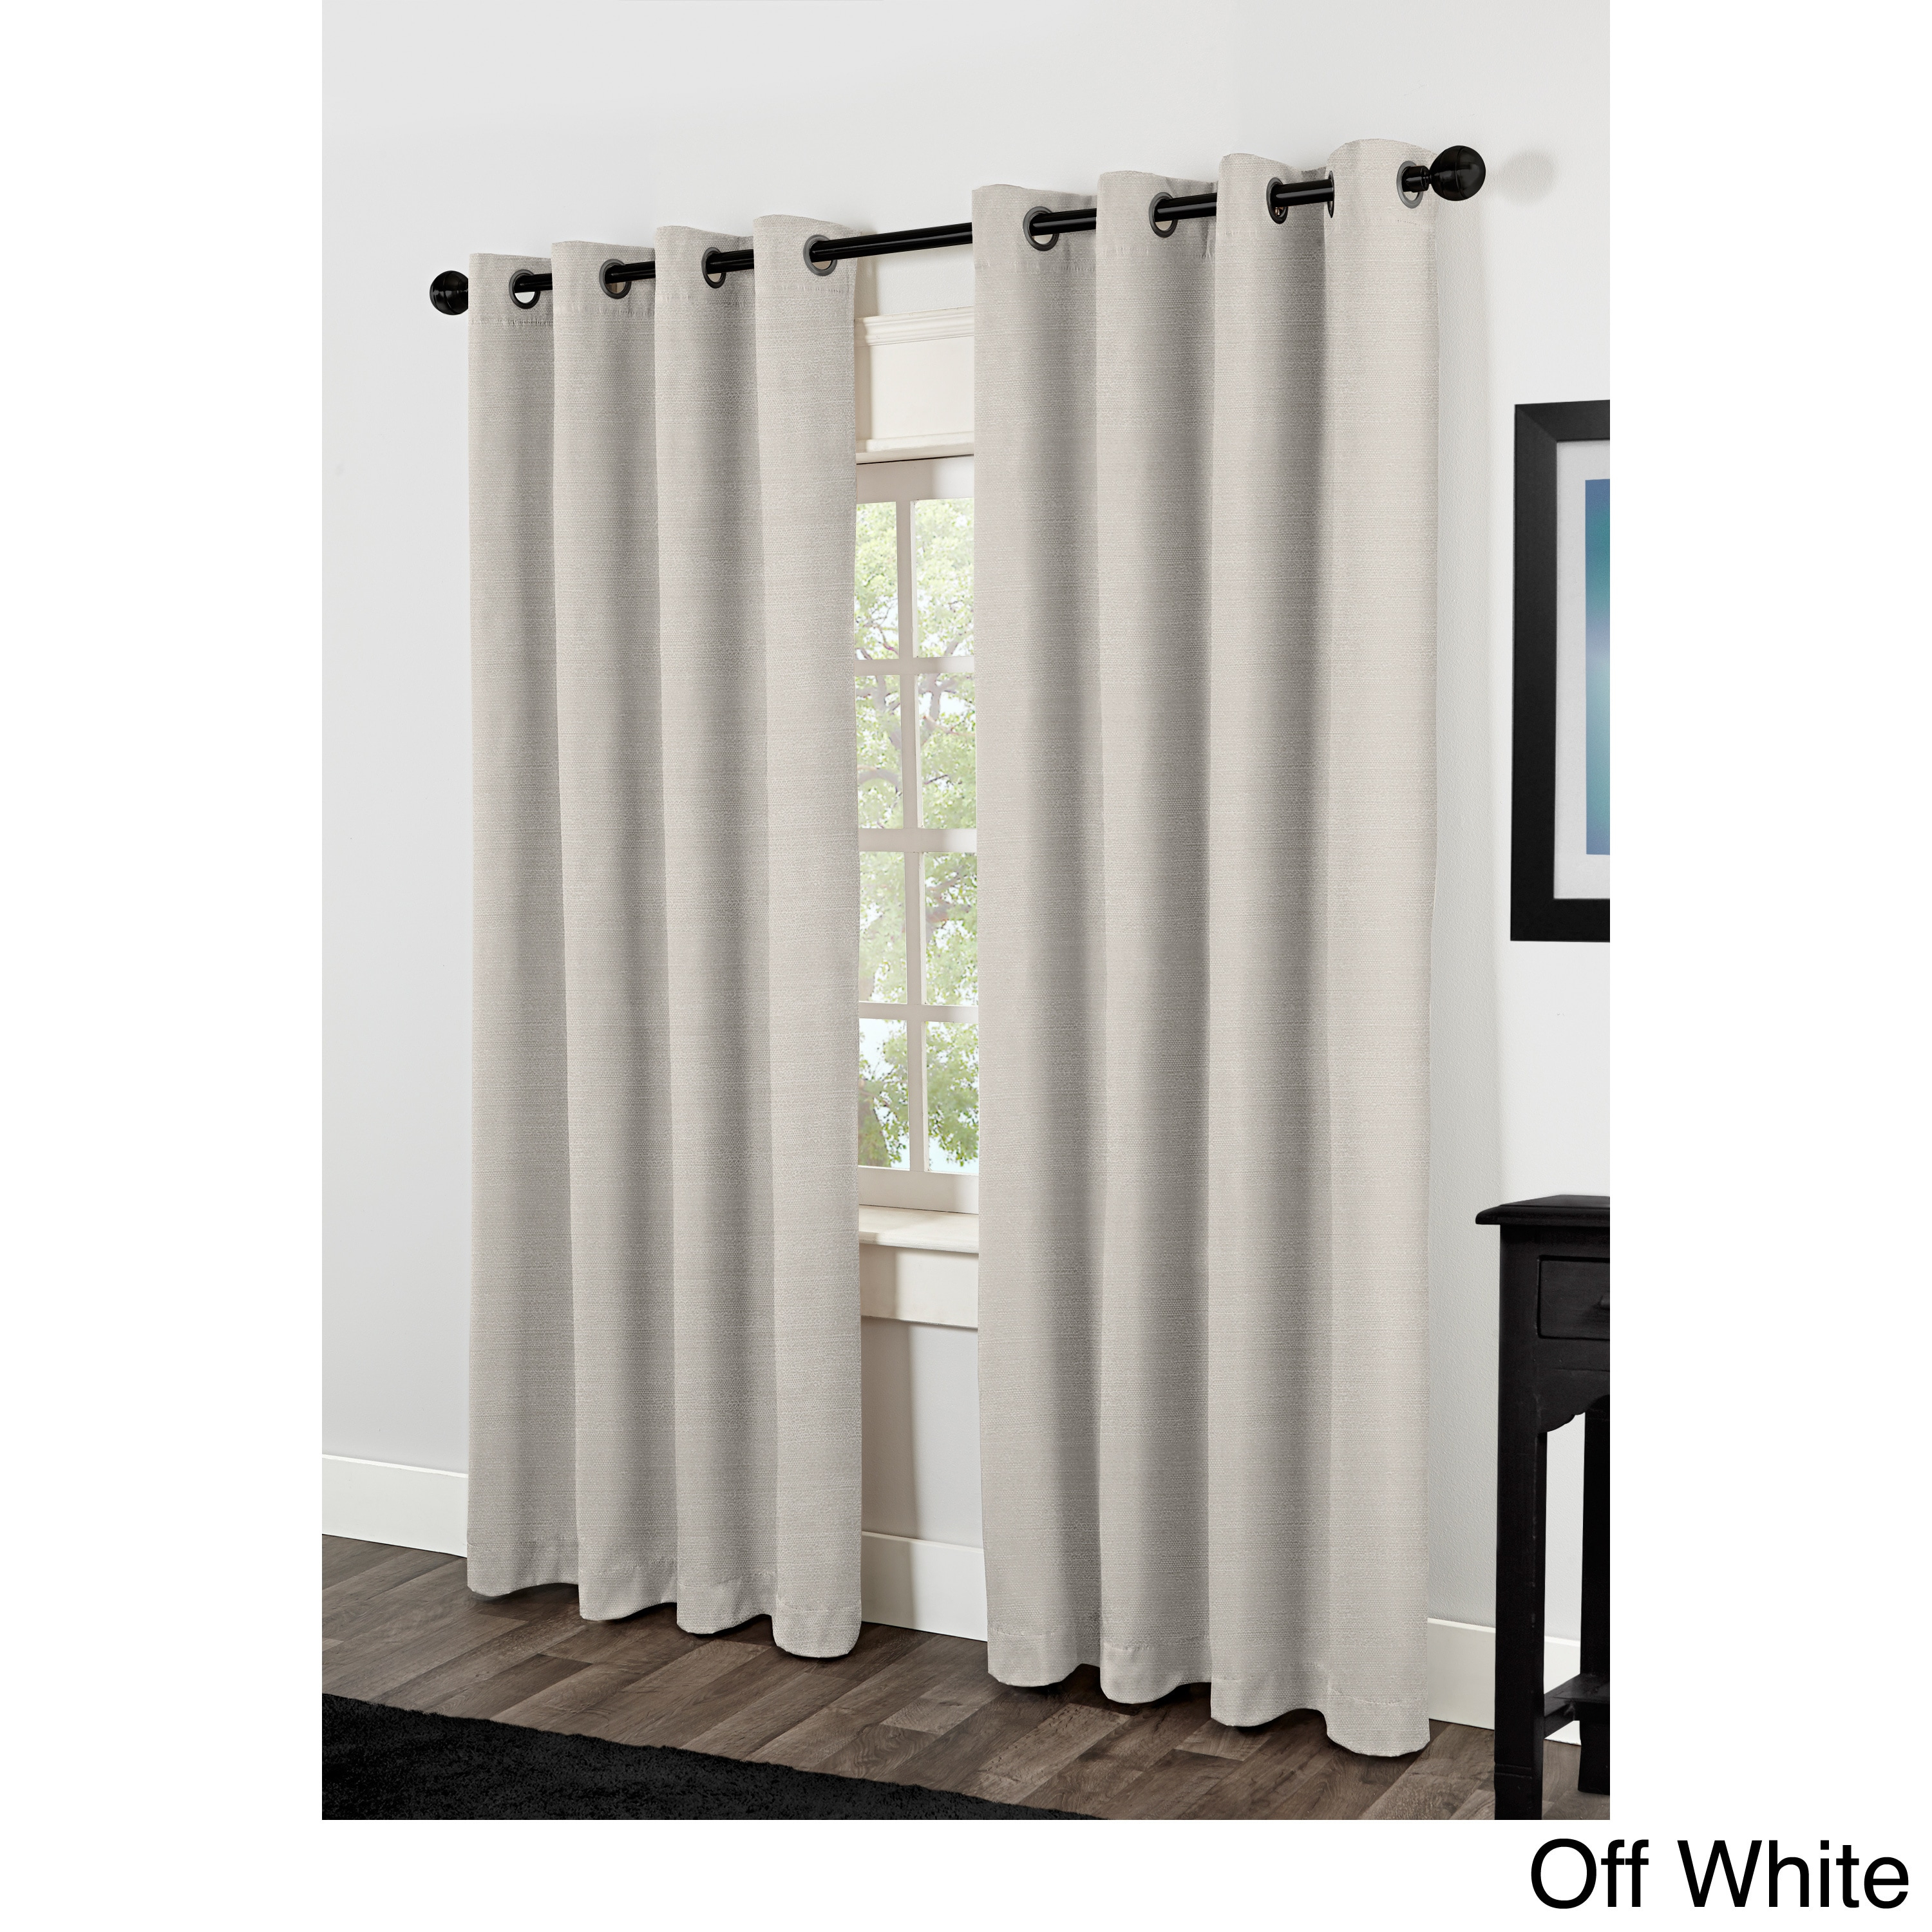 Oliver & James Botero Raw Silk Thermal Insulated Grommet Top Curtain Panel Pair Pertaining To Raw Silk Thermal Insulated Grommet Top Curtain Panel Pairs (View 7 of 20)